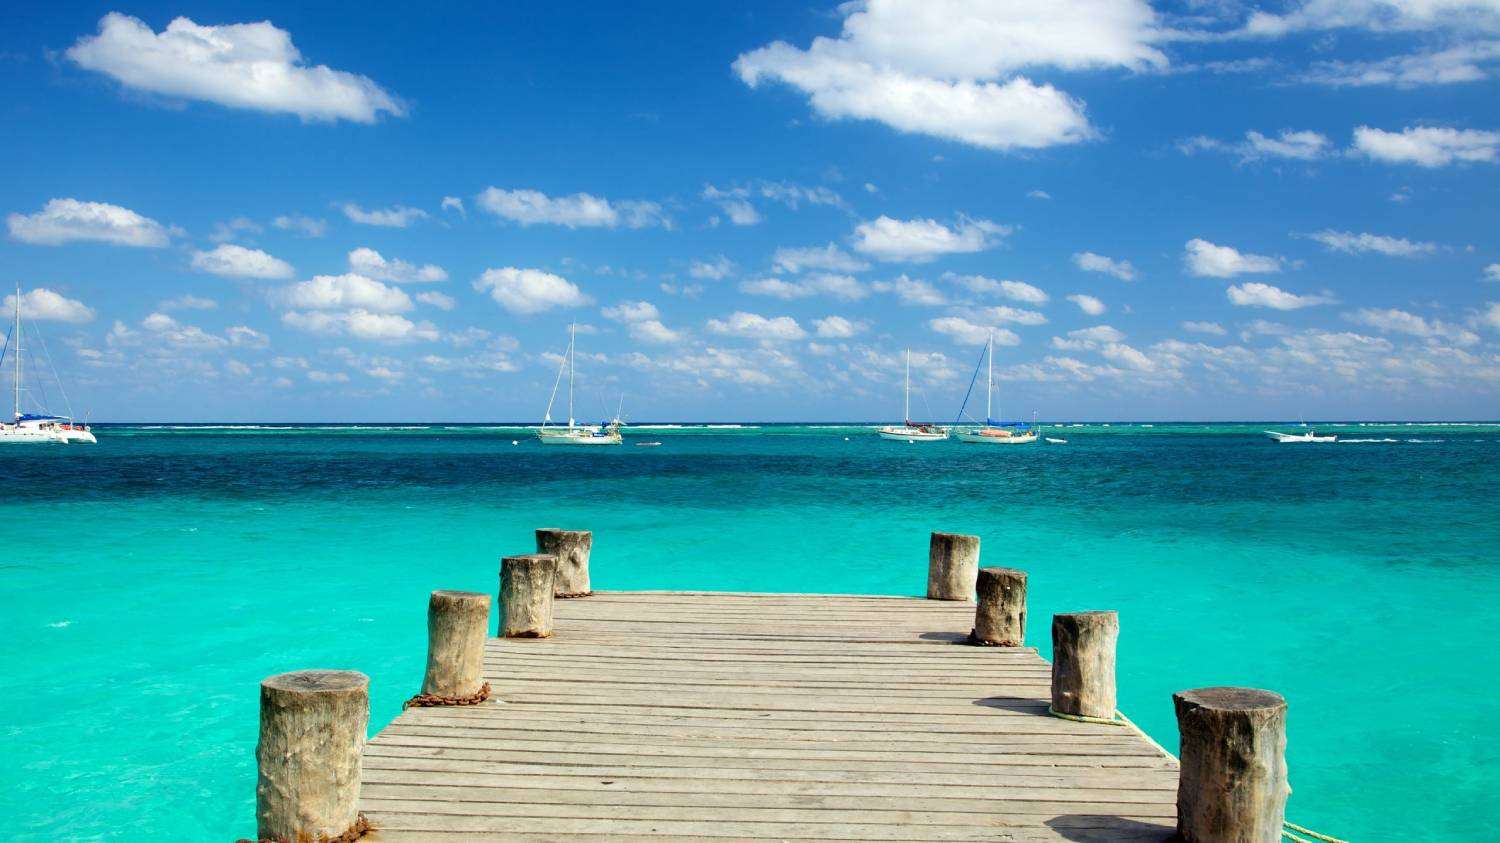 Puerto Morelos - Things To Do In Cozumel